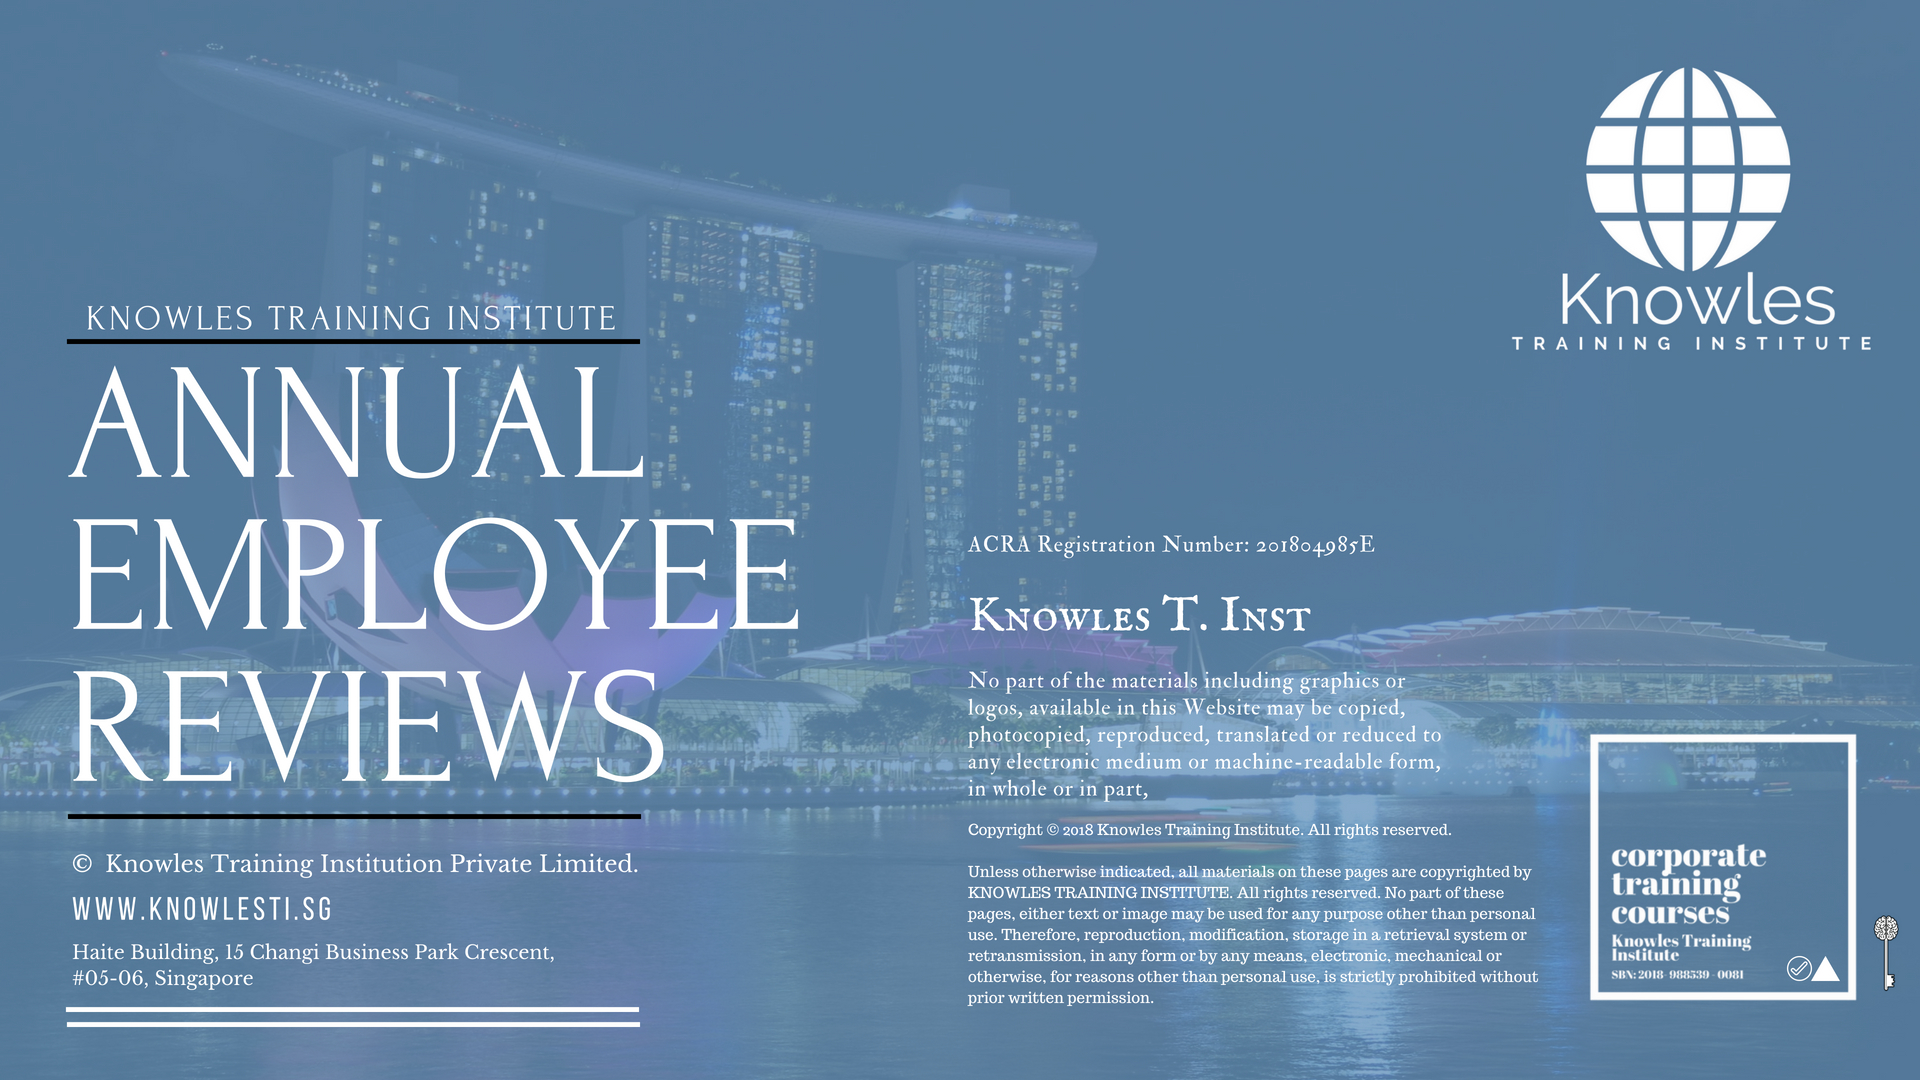 Annual Employee Reviews Course